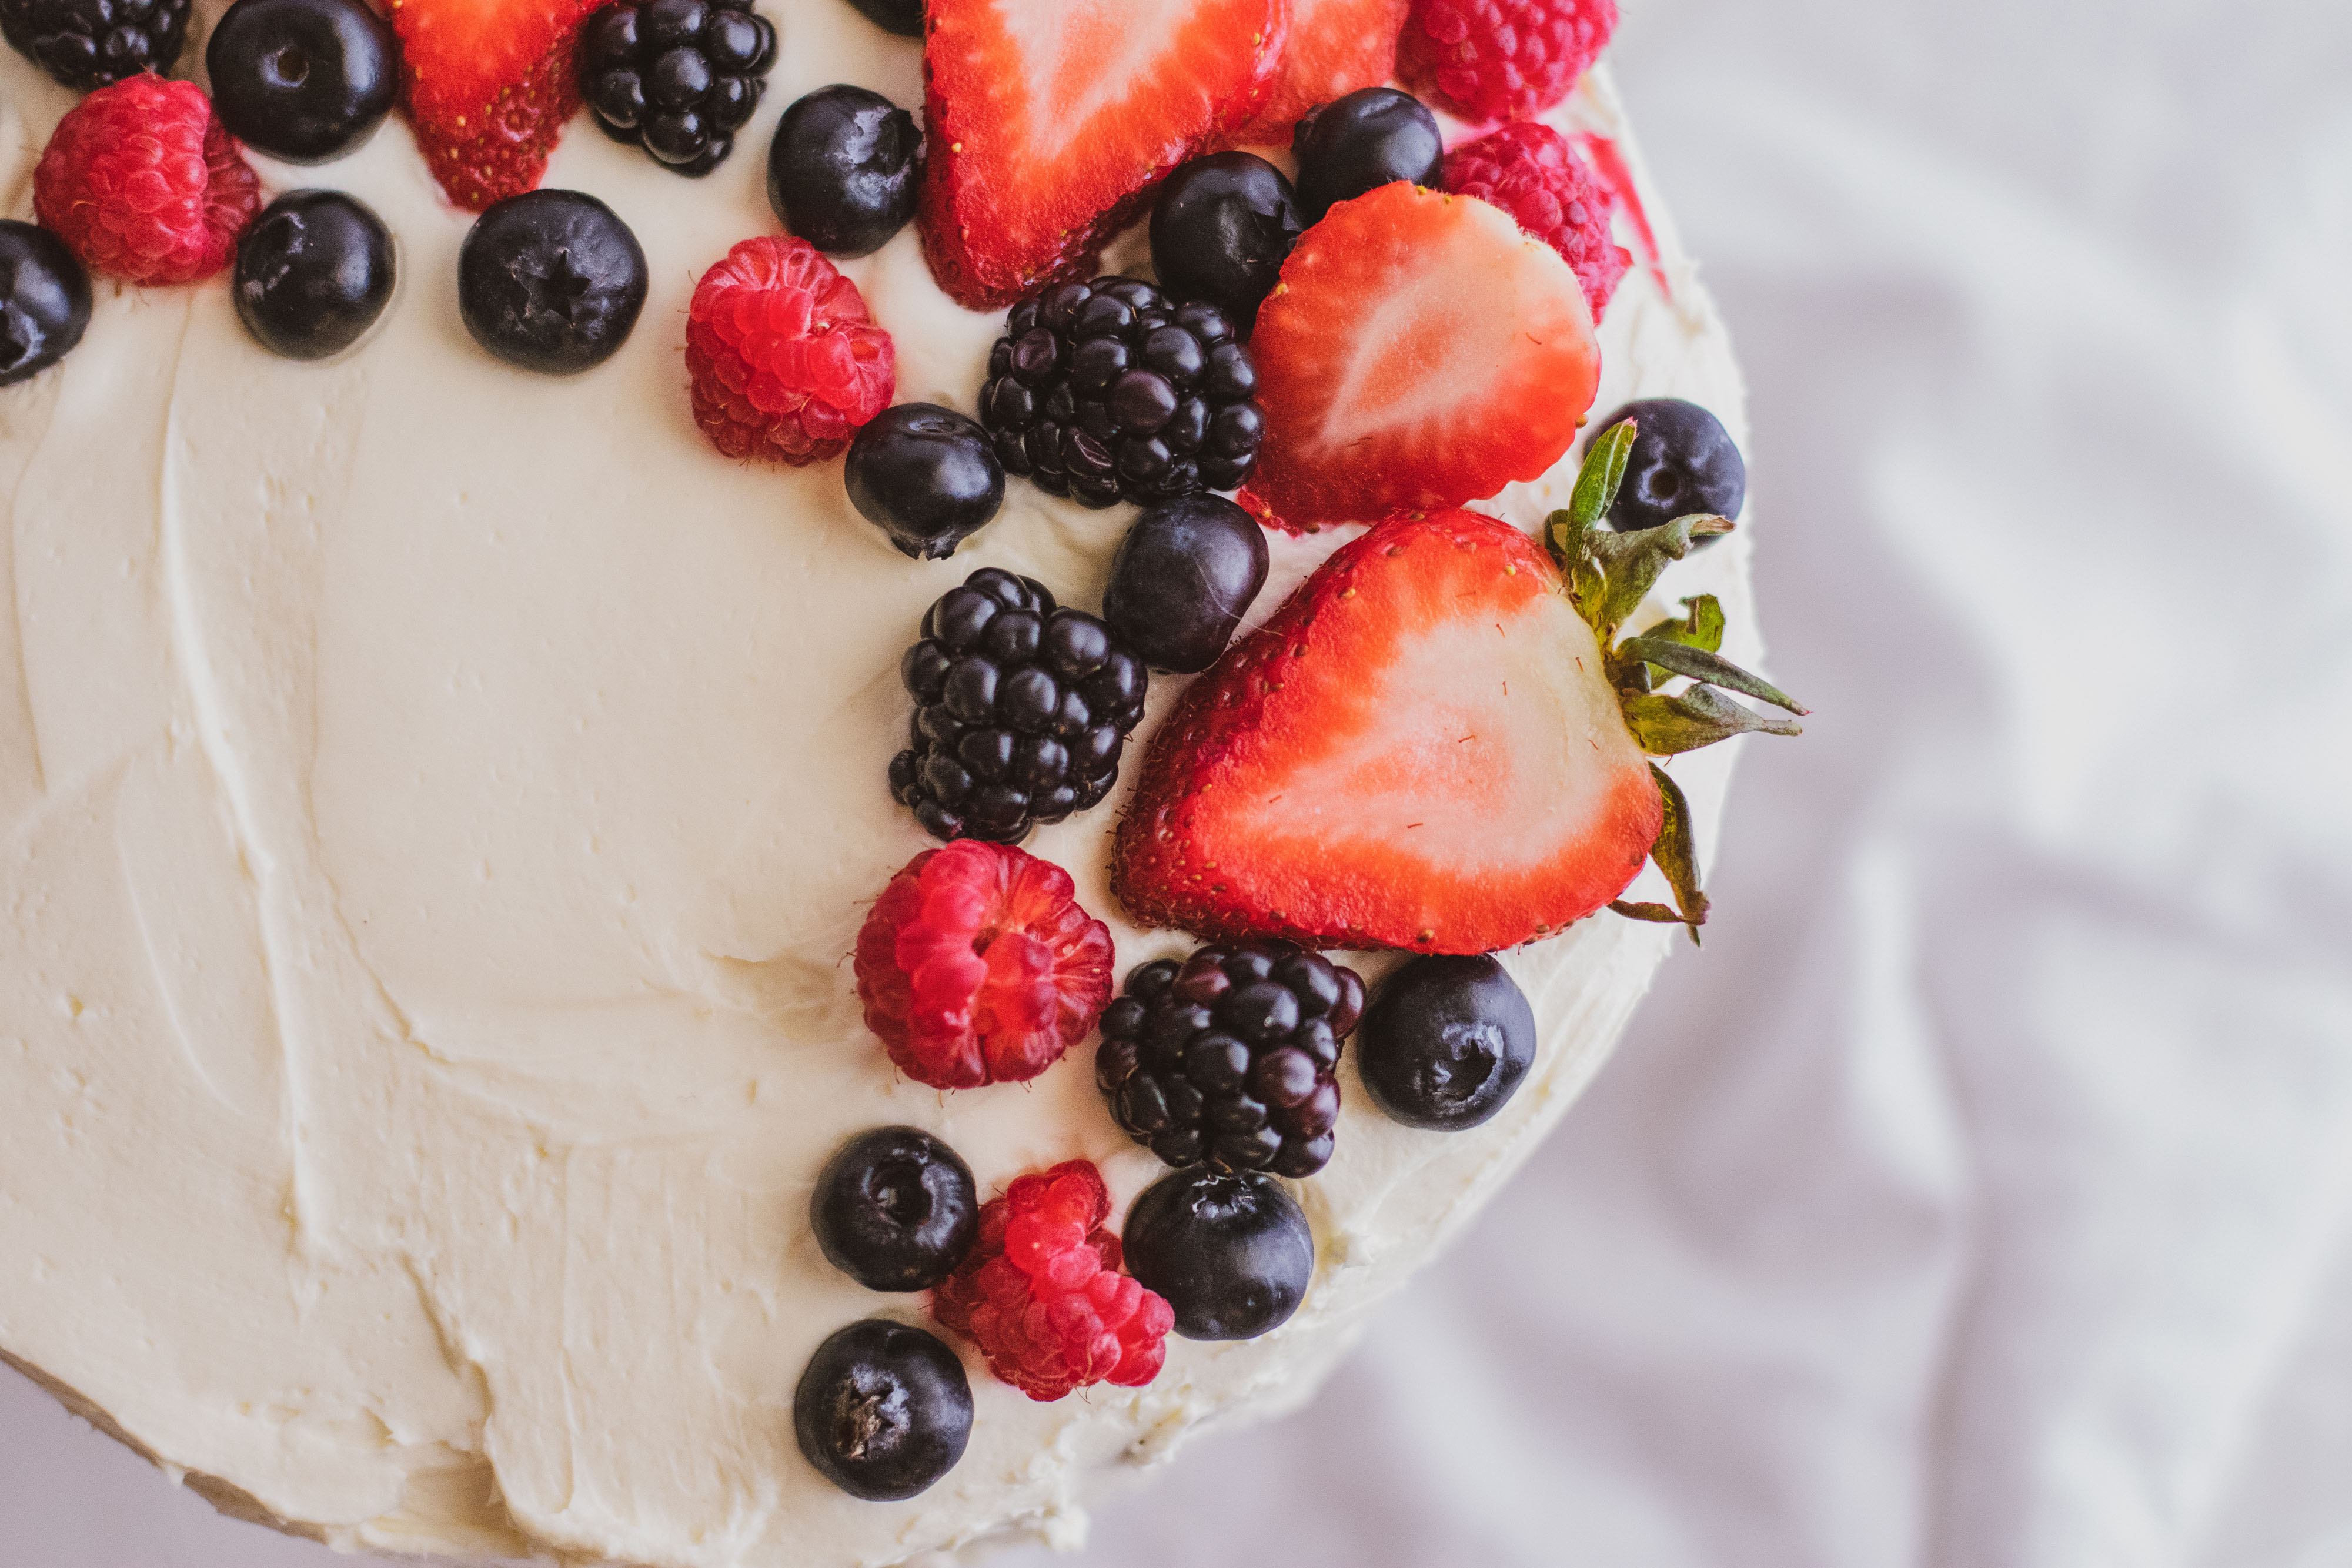 Keto Chantilly Cake a white cake with berries covering the top on a cake stand with a white surface